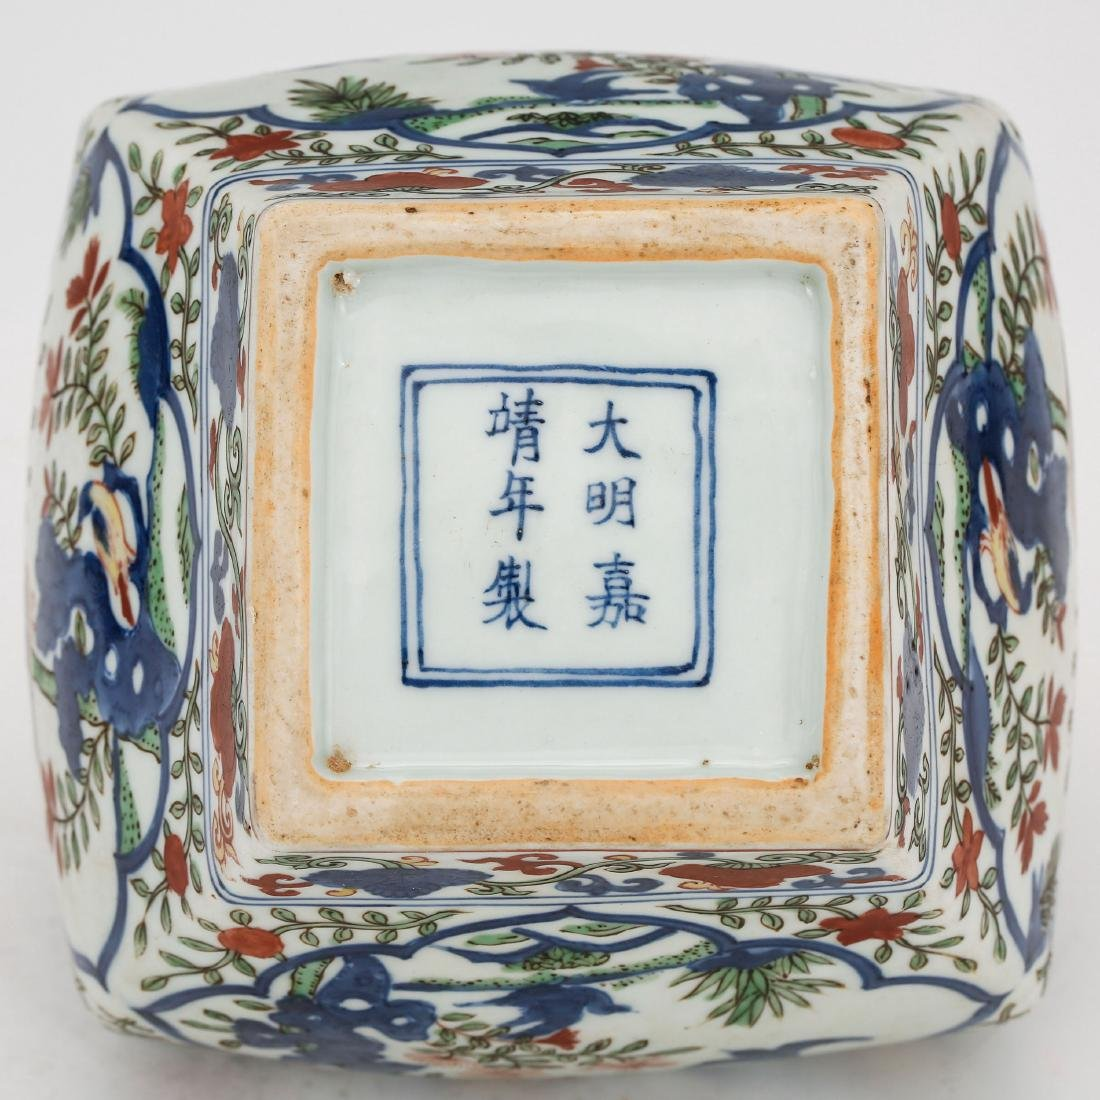 CHINESE MING DYNASTY WUCAI PORCELAIN JAR - 7